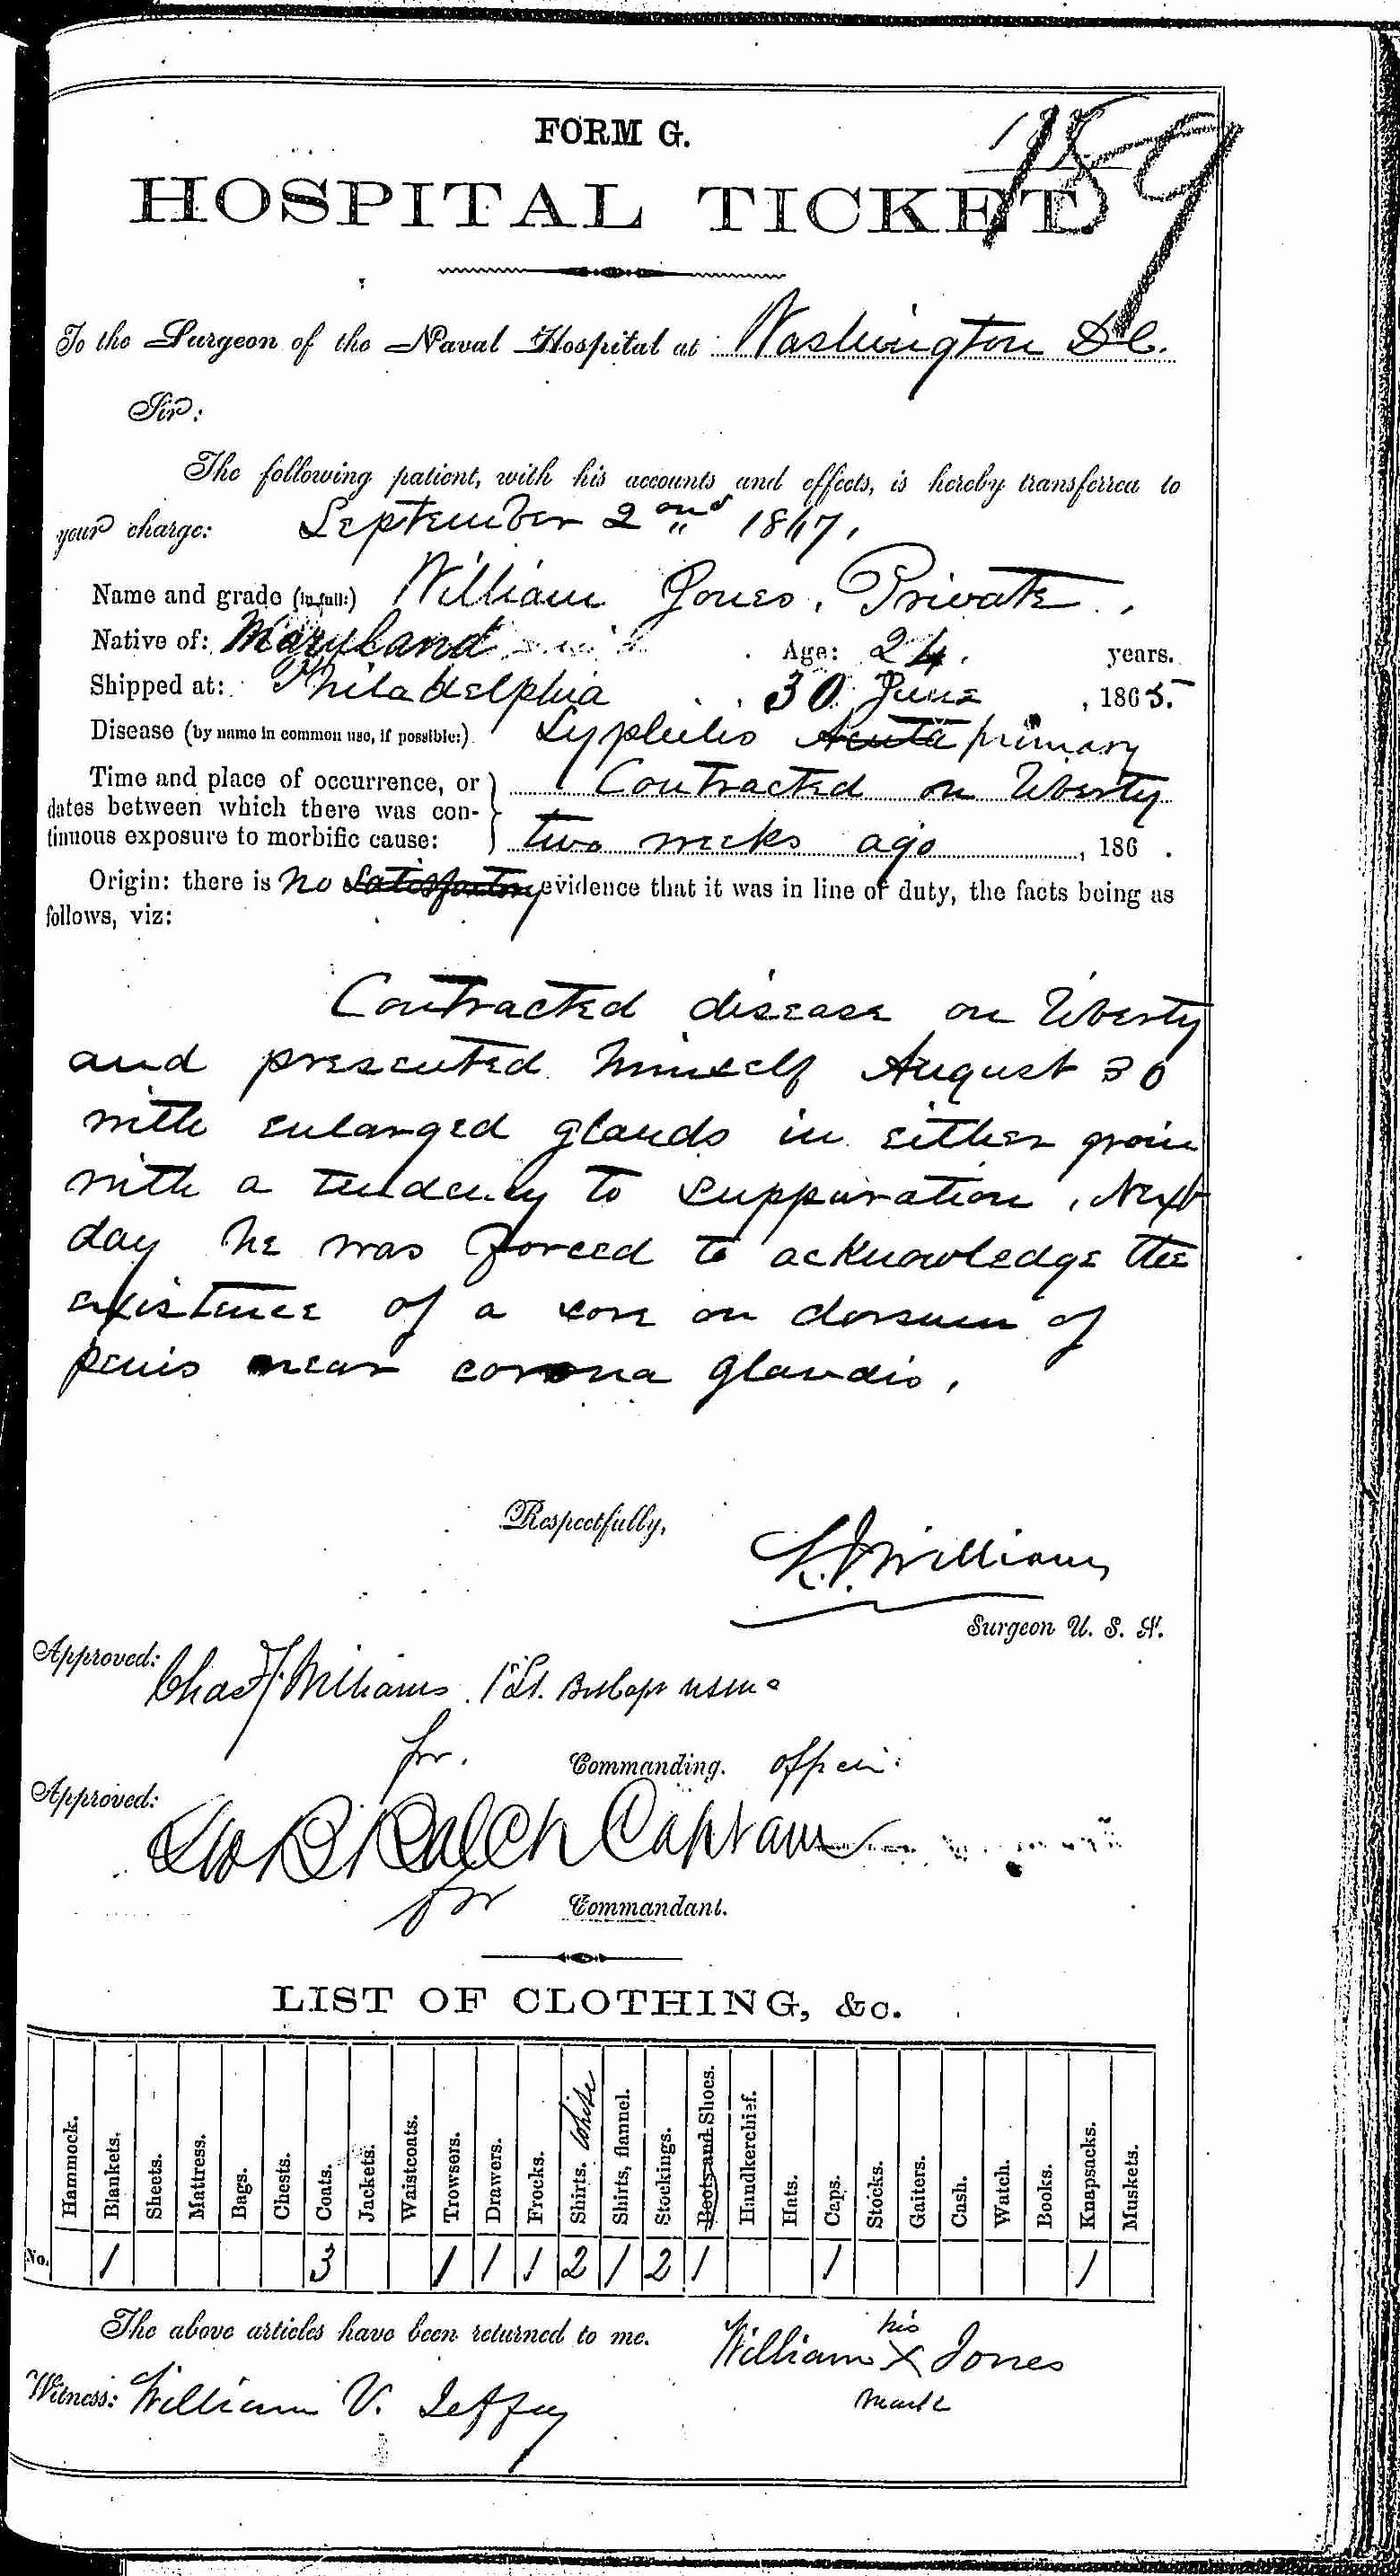 Entry for William Jones (first admission page 1 of 2) in the log Hospital Tickets and Case Papers - Naval Hospital - Washington, D.C. - 1866-68